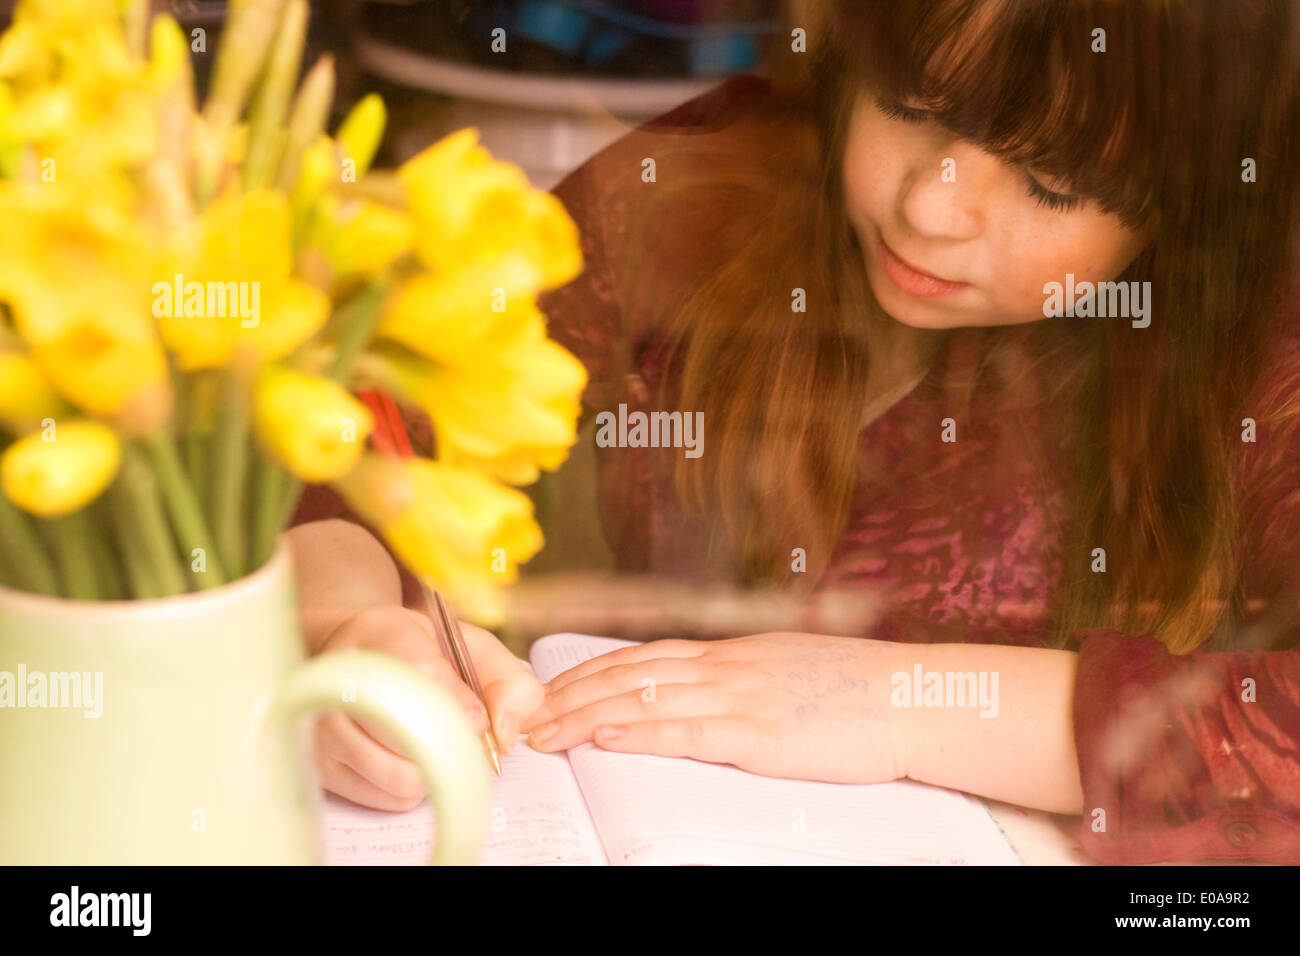 Girl writing by daffodils on desk - Stock Image